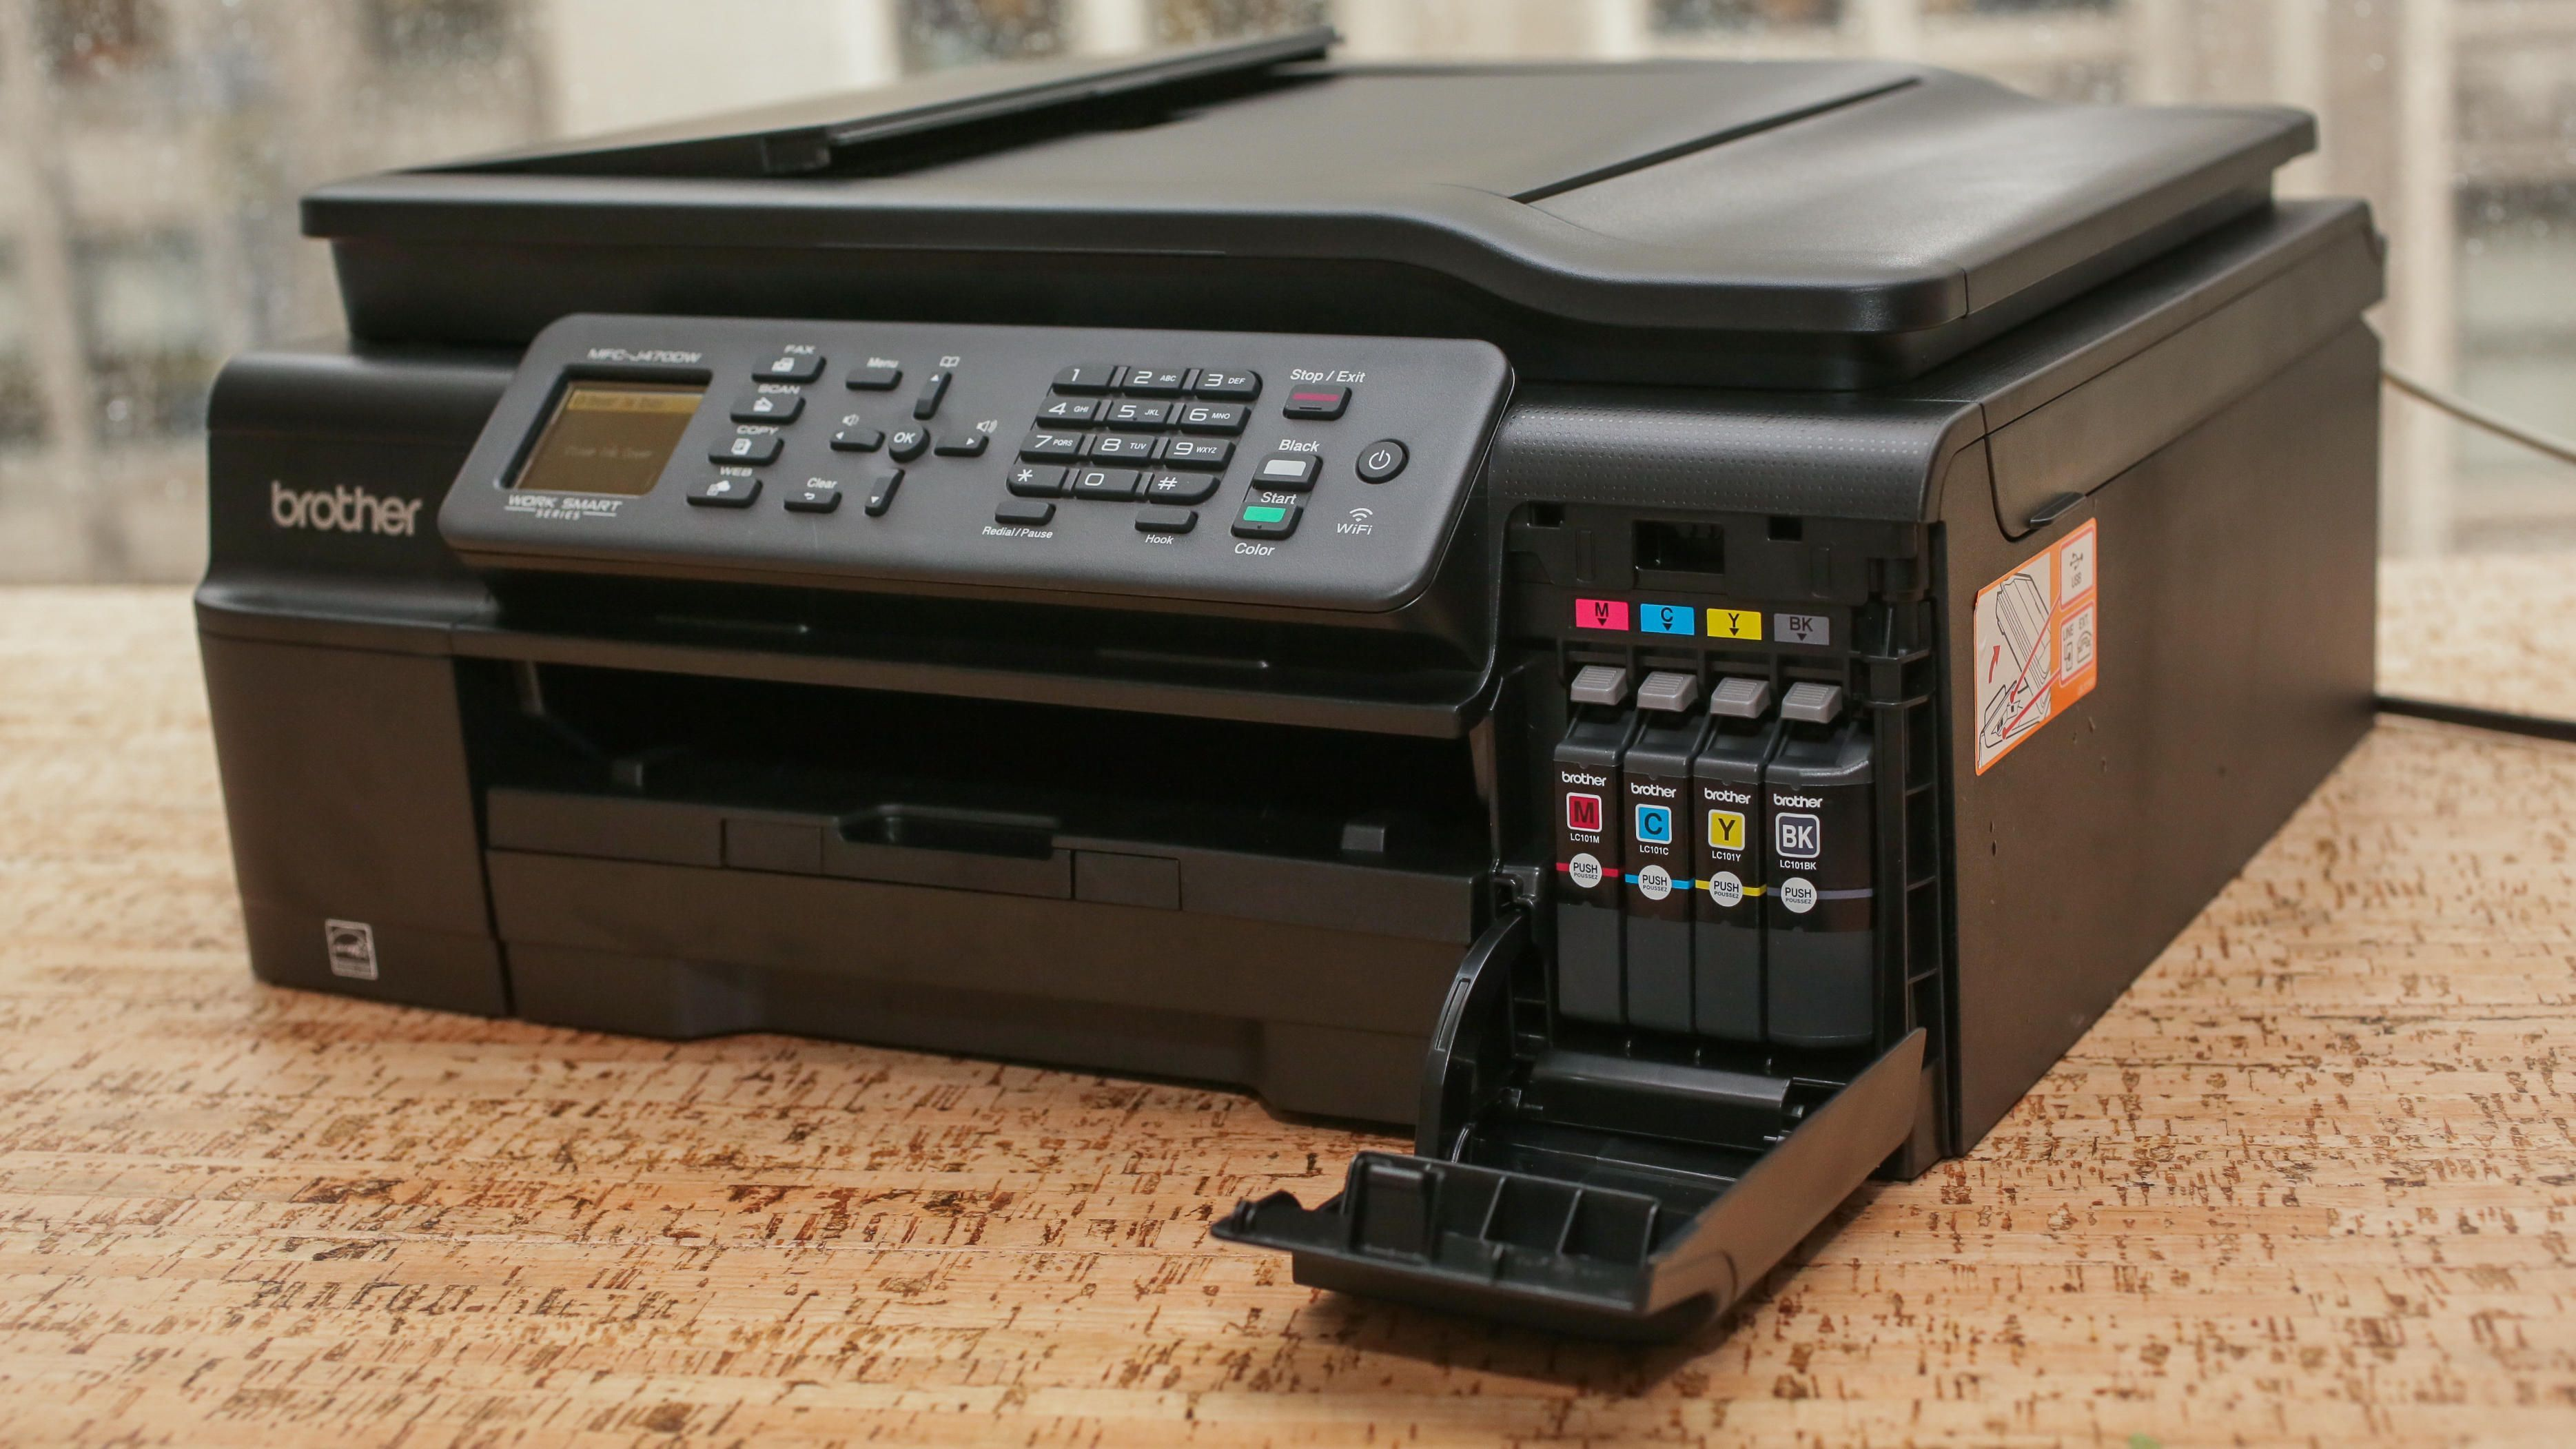 Brother Mfc J470dw Review A Sub 100 All In One Printer With Low Cost Ink Refills Brother Printers Brother Mfc Ink Refill